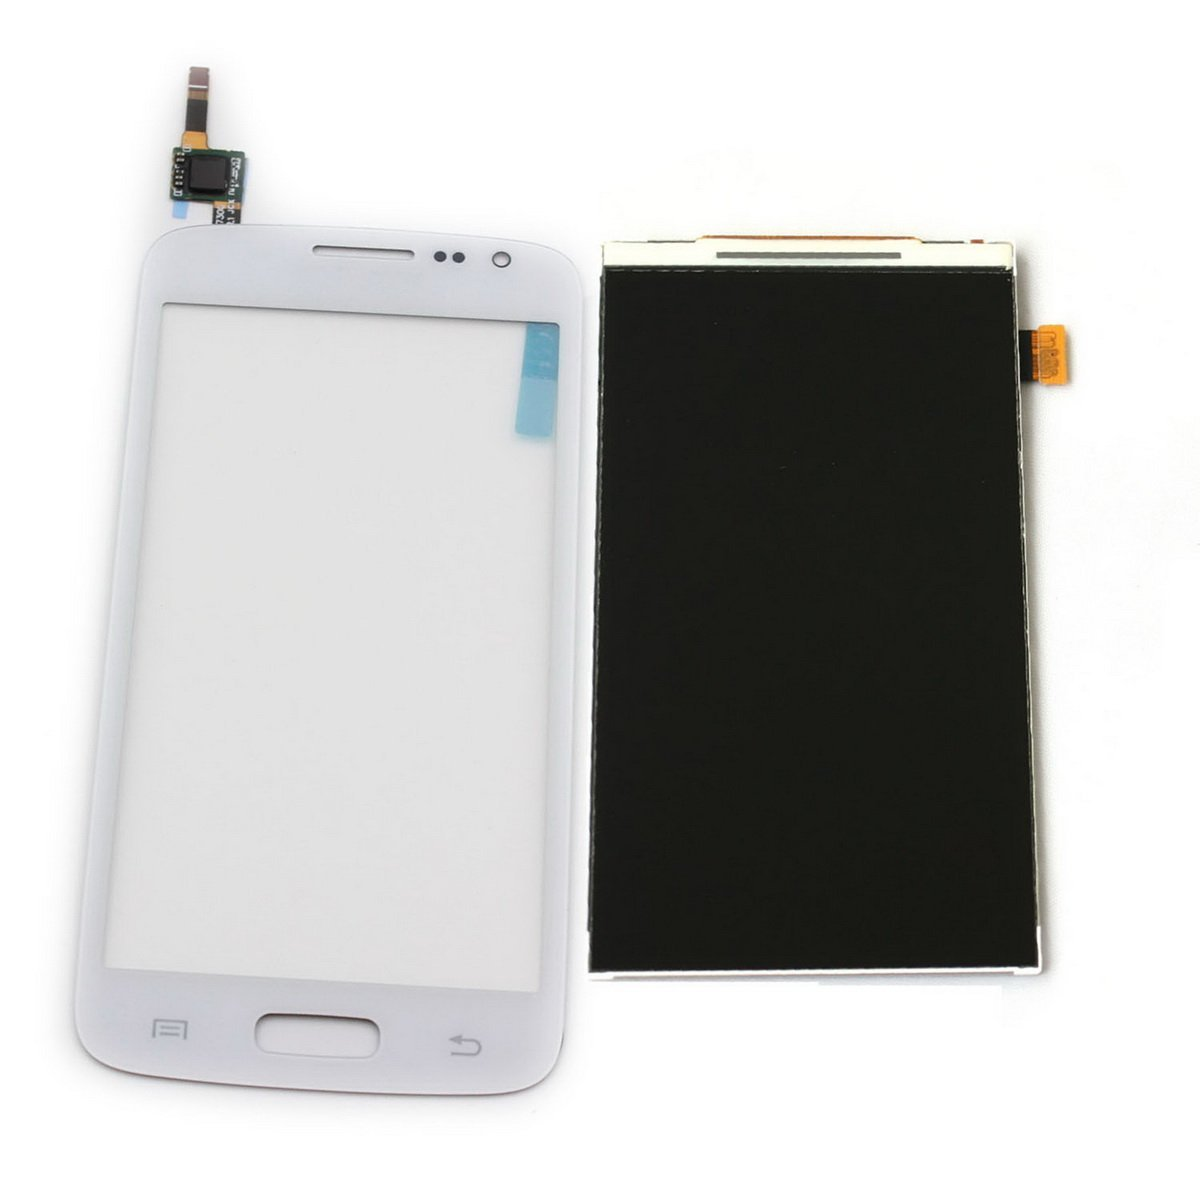 Cell Phones Parts From USA New Black Full Assembly Cobom LCD Display Touch Screen Digitizer Complete for Samsung Galaxy Avant SM-G386 G386TR Metro PCS G386T T-mobile G386T1 Core G386F G386W (White)